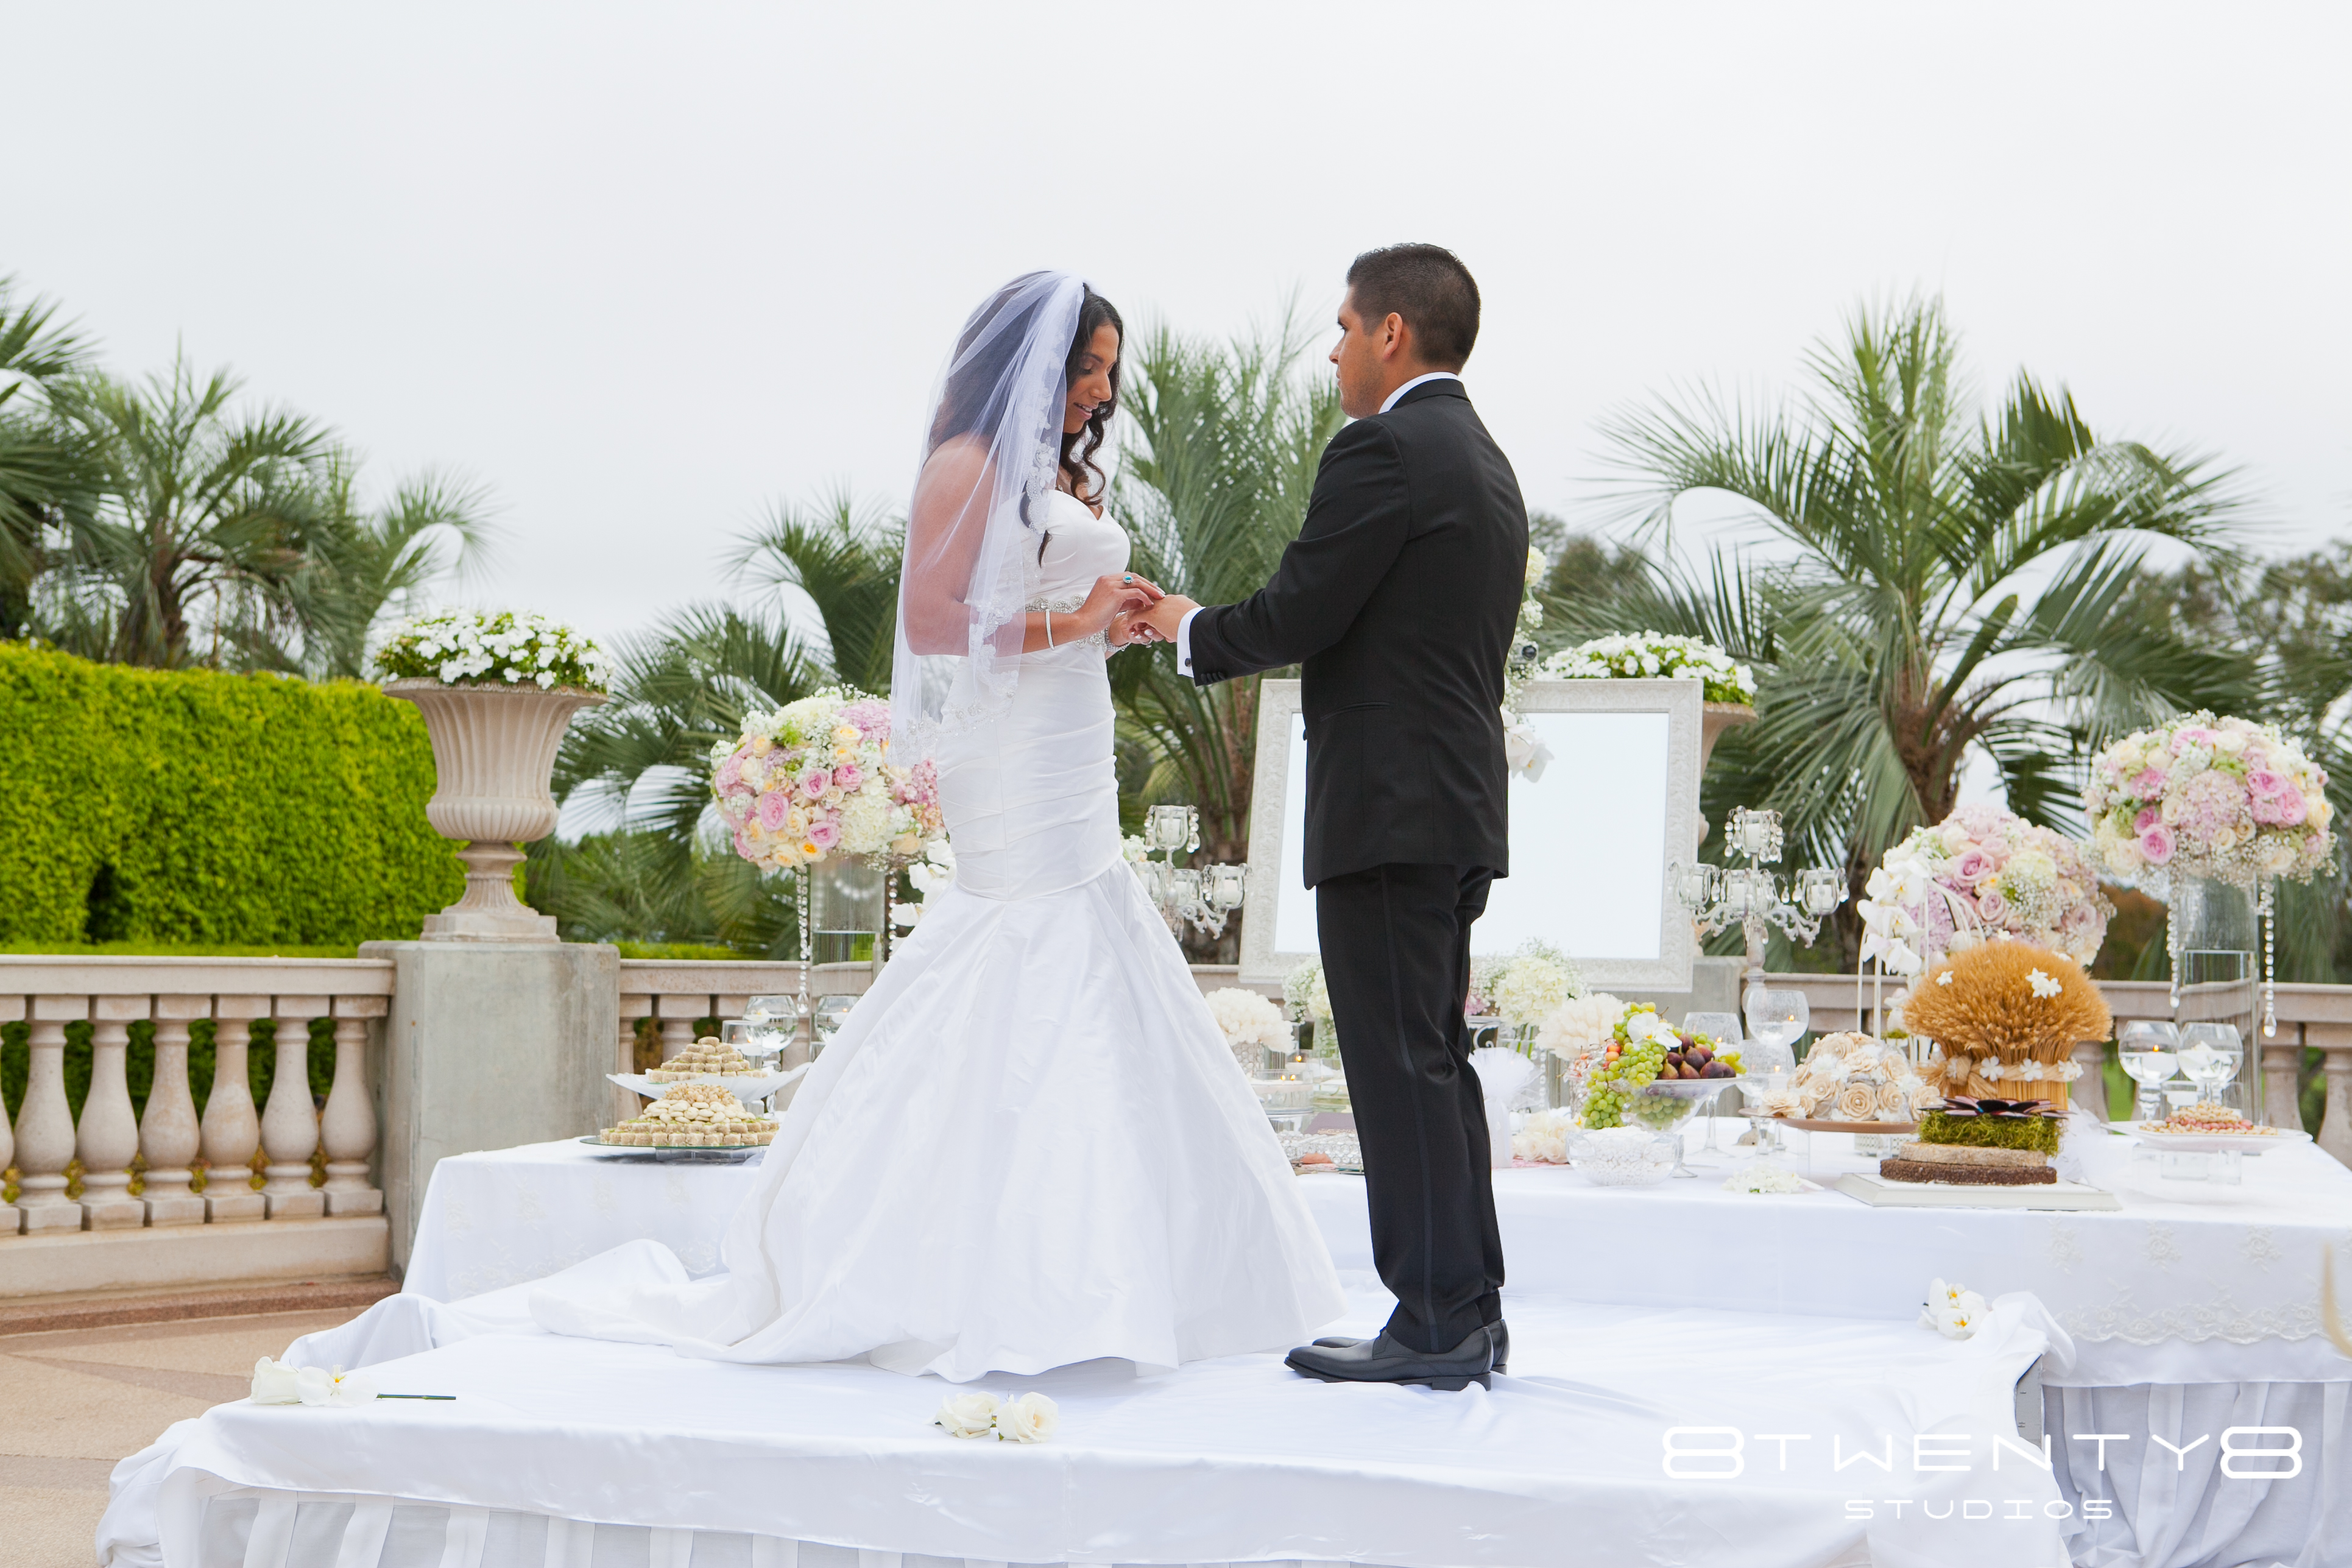 Themes just imagine weddings ceremonies blog the sofreh was beautifully adorned with symbolic items for the buycottarizona